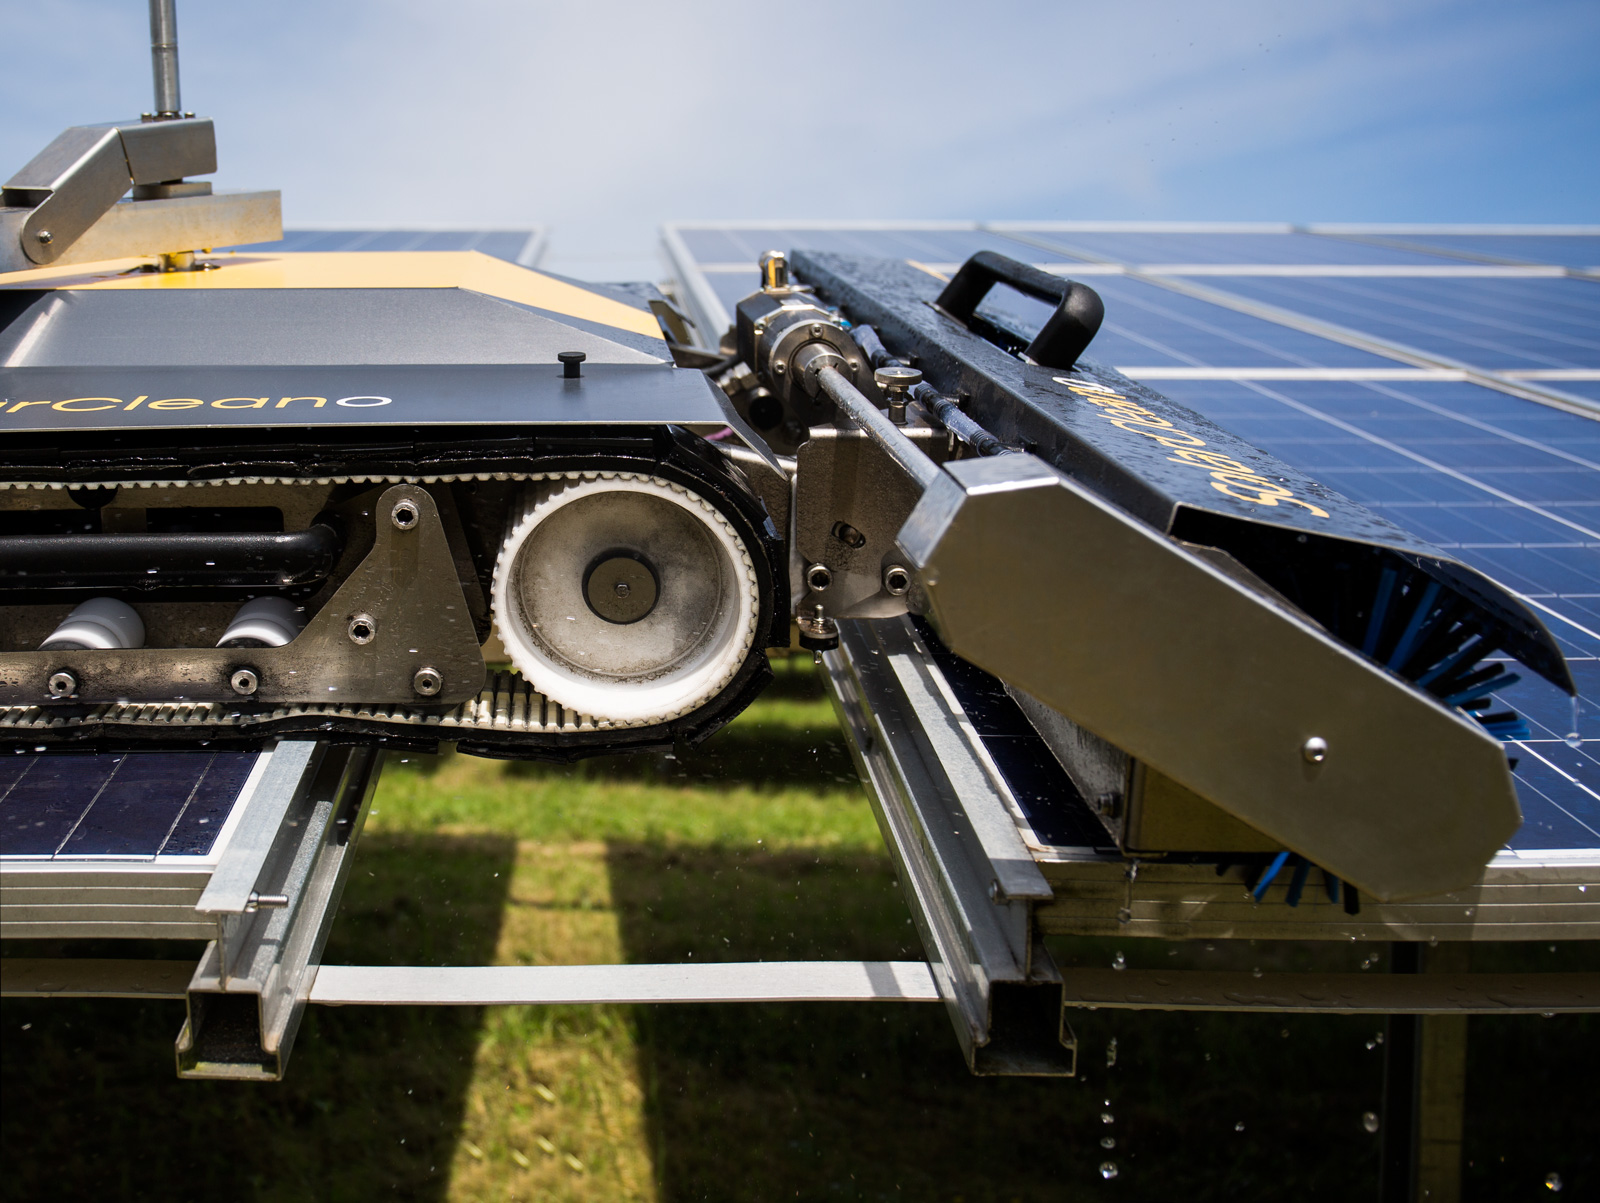 With Solarcleano And Dunkermotoren To An Economic And